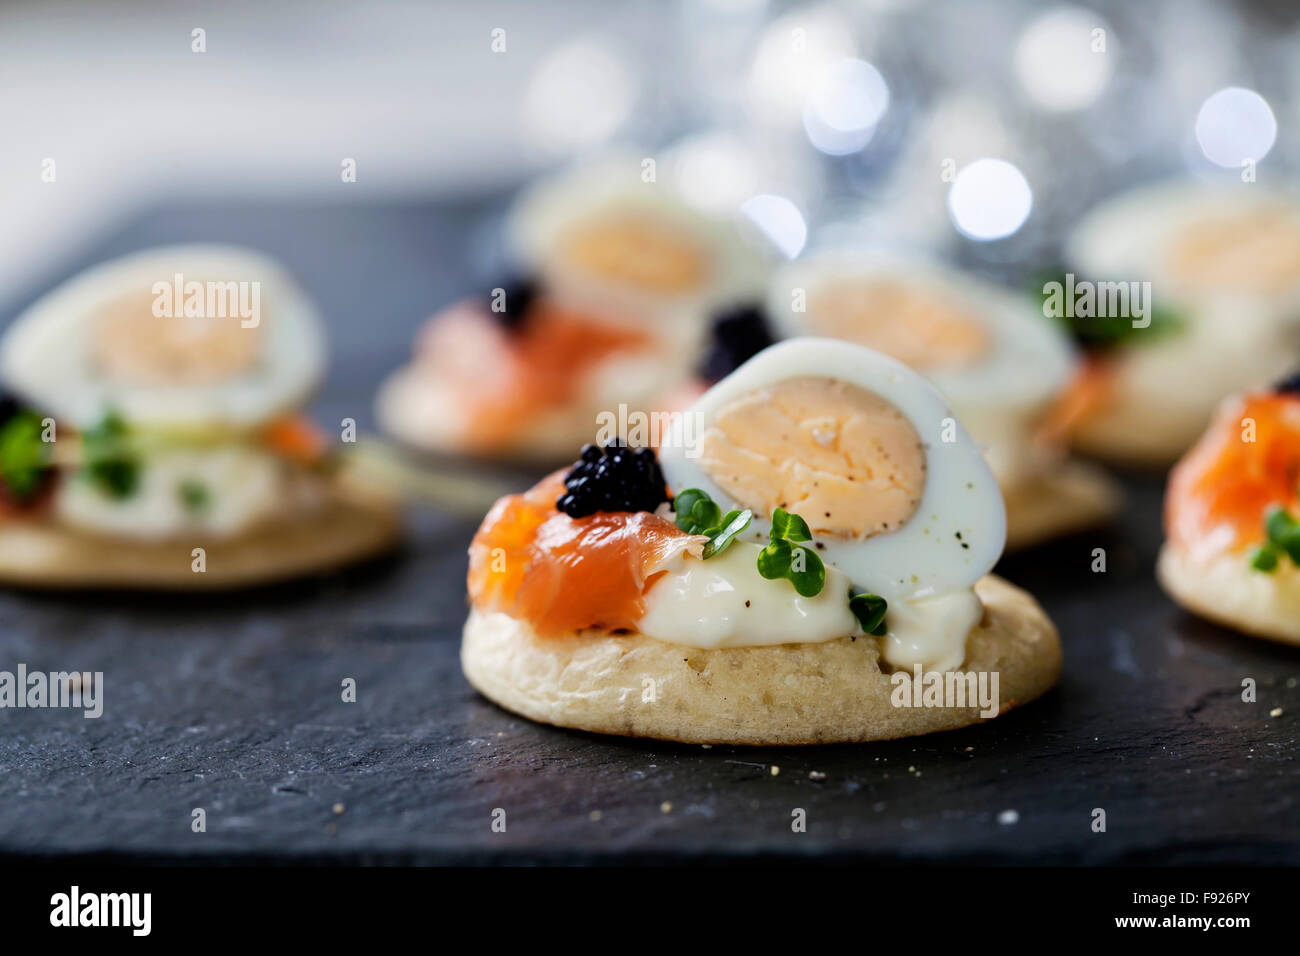 Party food, blinis with salmon, quail egg and caviar - Stock Image